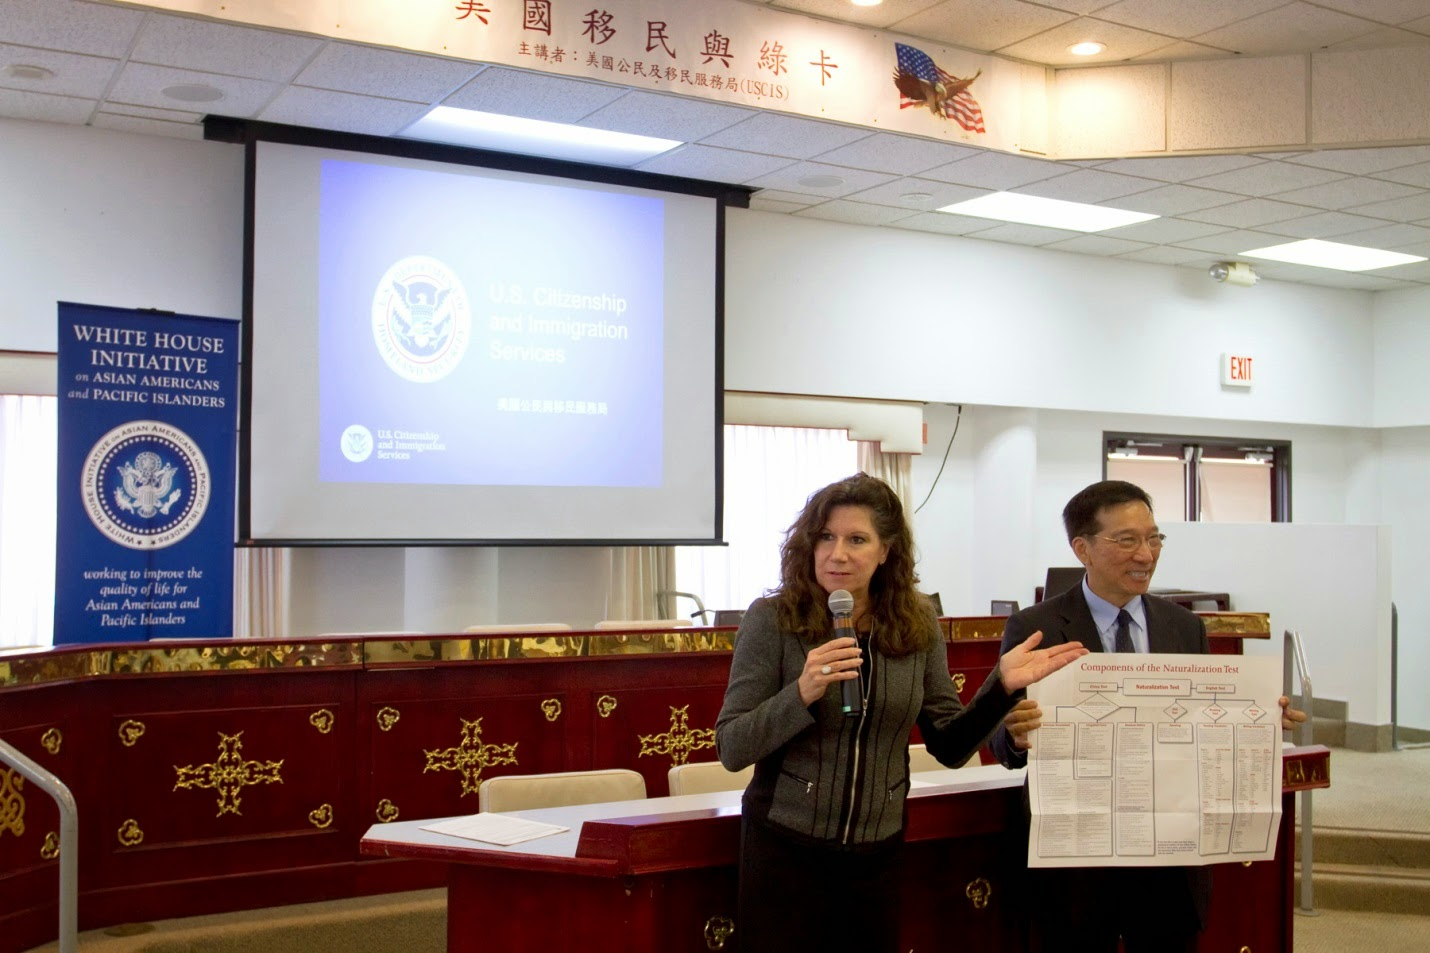 Susan M Curda (left) gives opening remarks and introduces the USCIS staff